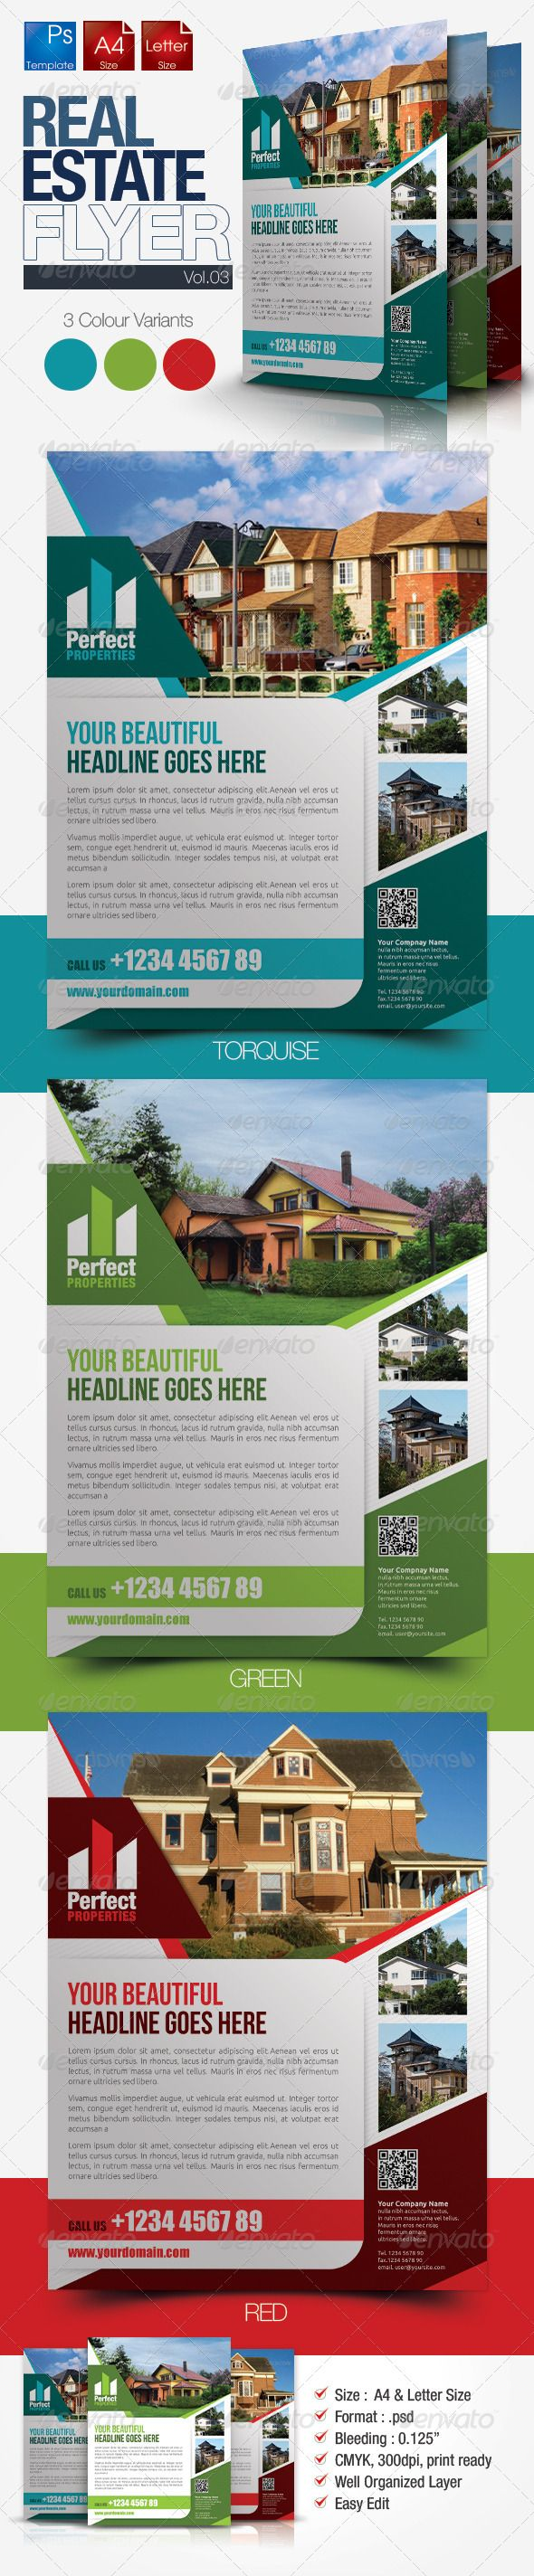 Simple Real Estate Flyer Vol.03 — Photoshop PSD #building #mortgage • Available here → https://graphicriver.net/item/simple-real-estate-flyer-vol03/2794932?ref=pxcr